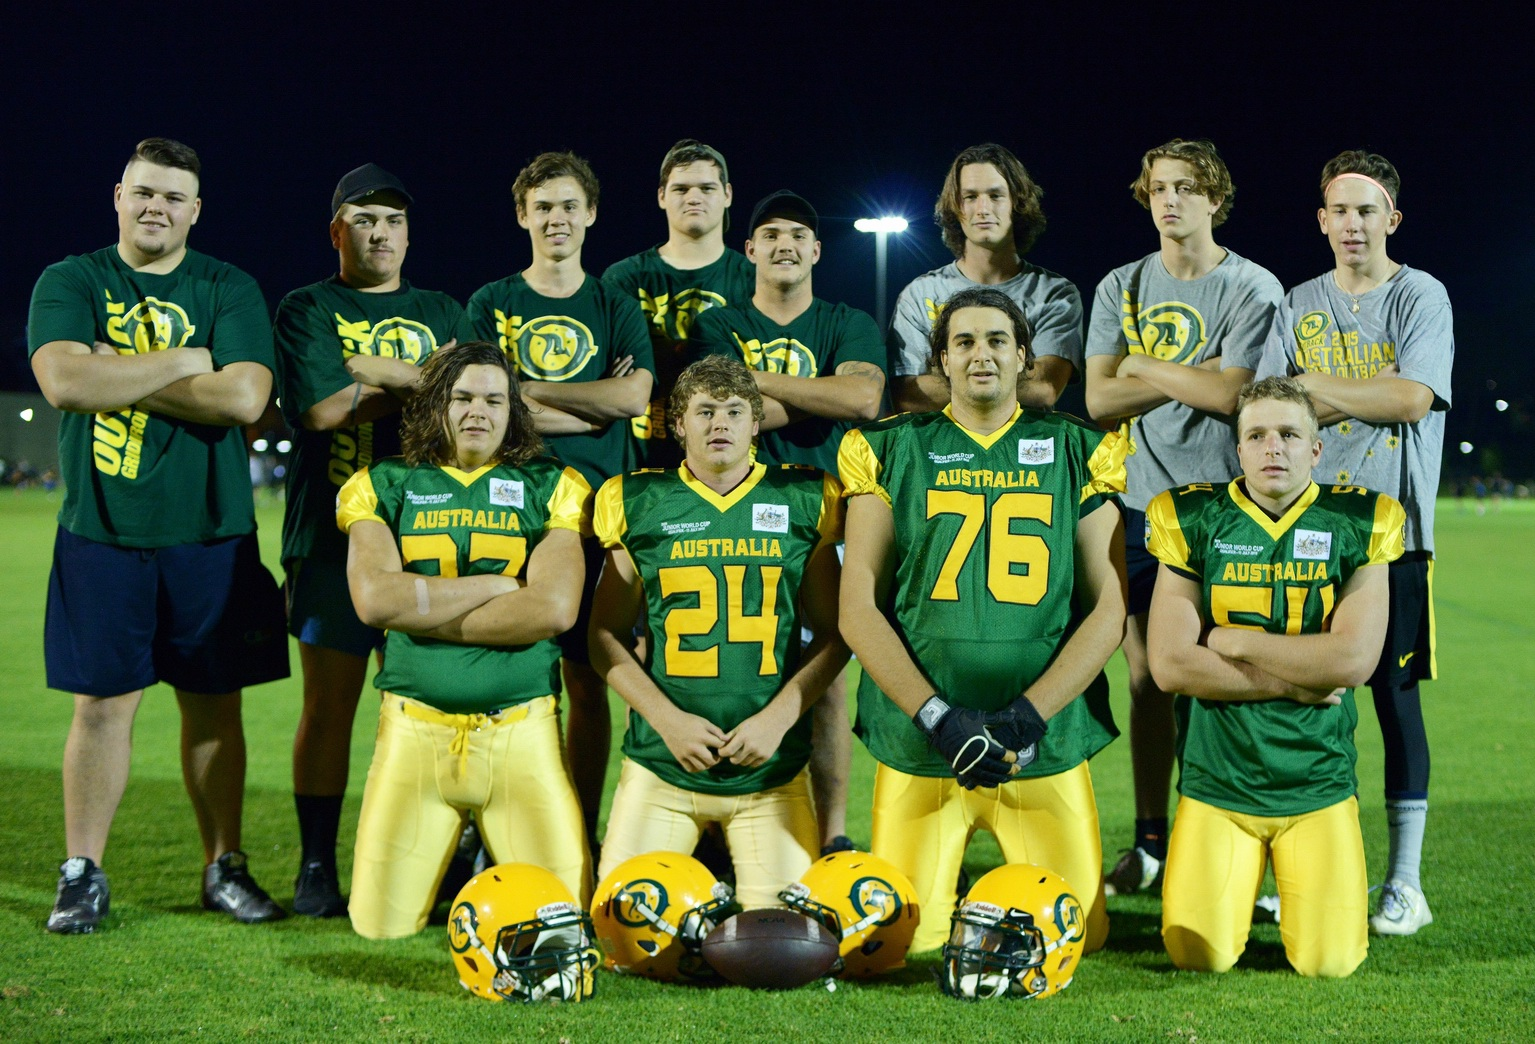 The Australian gridiron team.